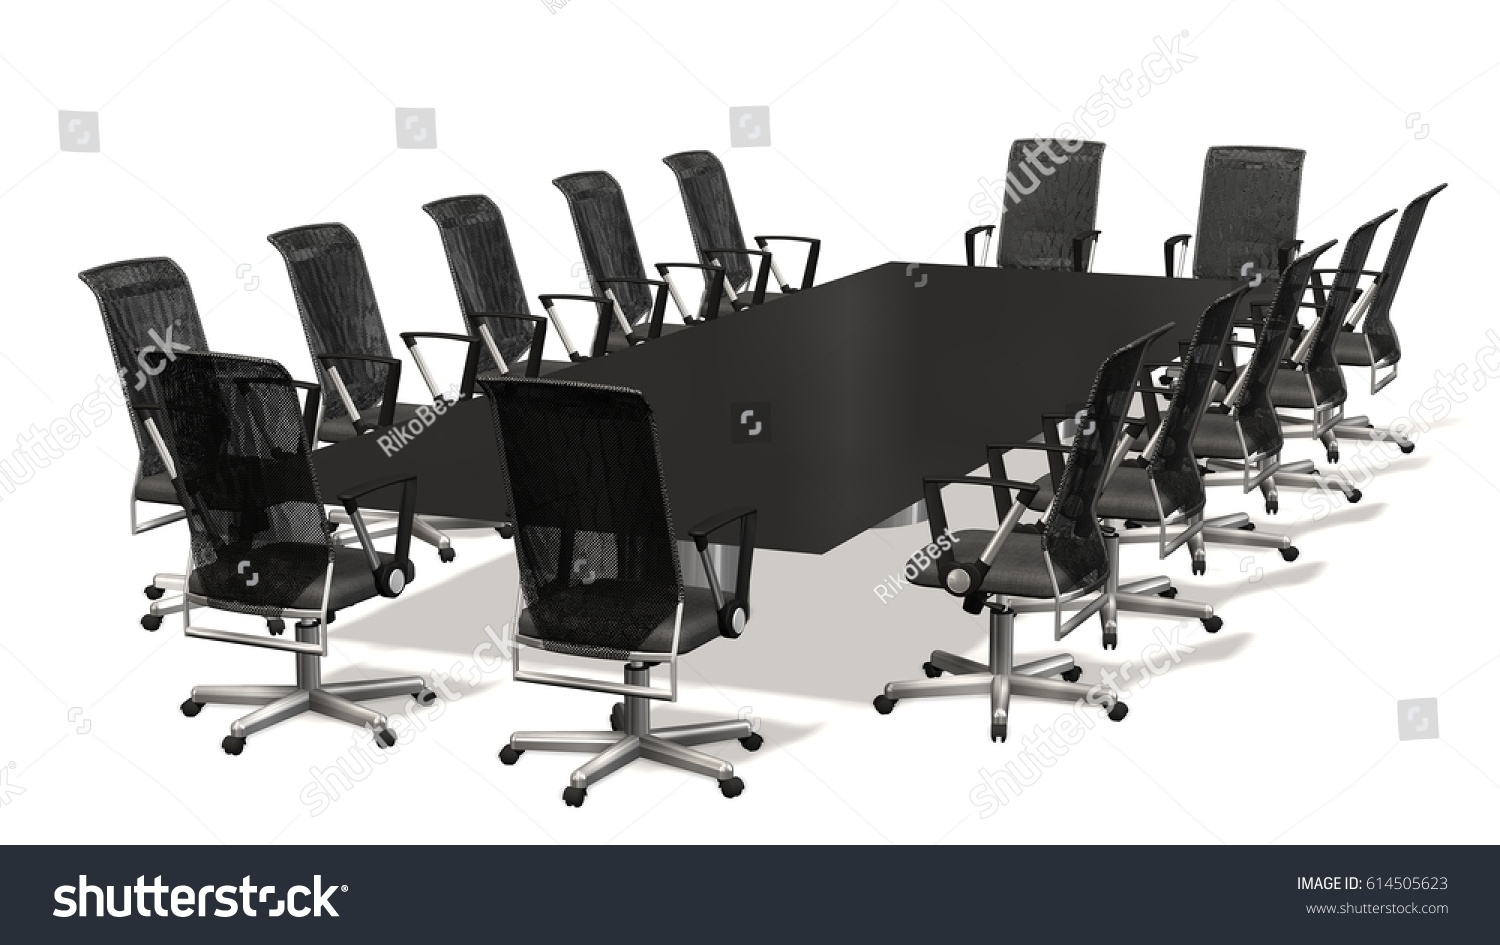 Boardroom, Meeting, Conference Table With With Office Chairs. Business  Concept. Isolate On